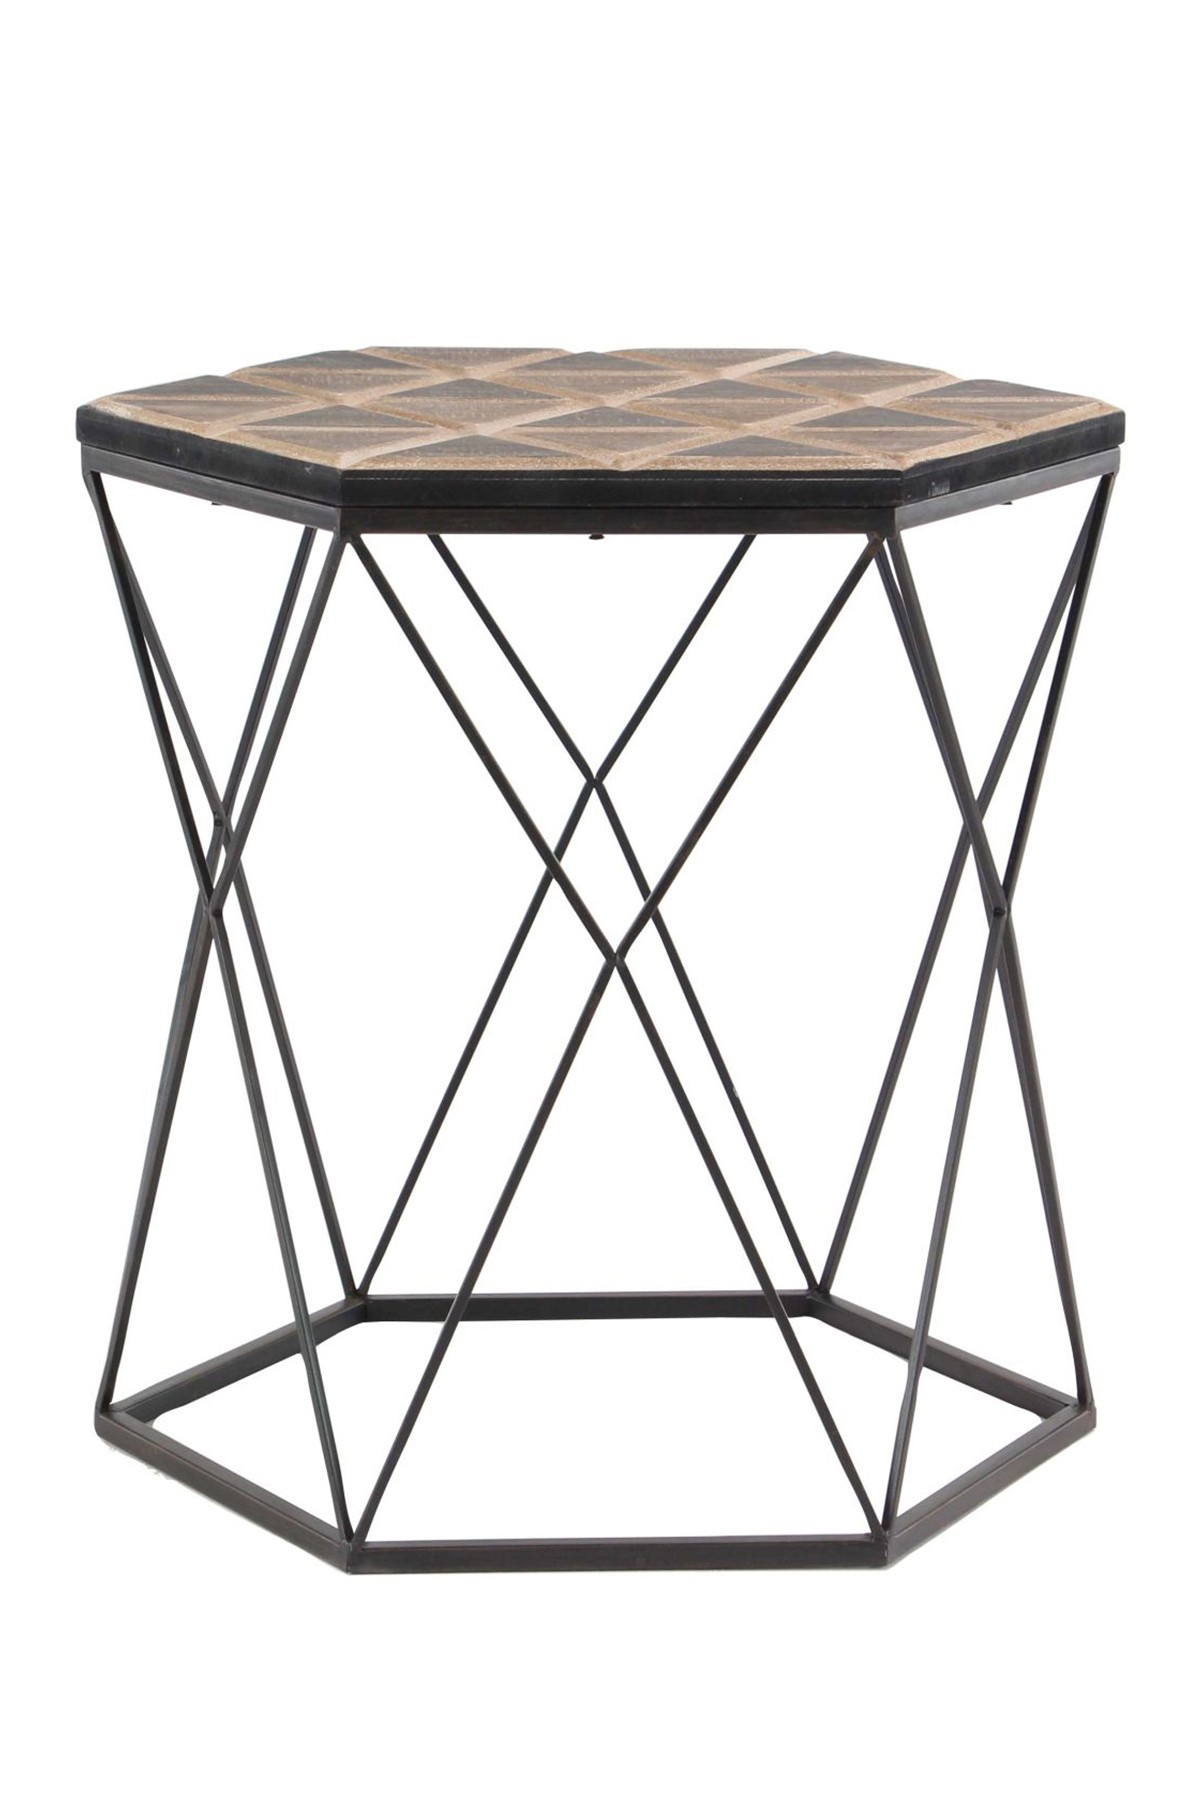 uma brown gray metal wood accent table nordstrom rack kitchen cupboards coffee side white bedside cabinets seaside decor copper long counter height set farmhouse style dining room